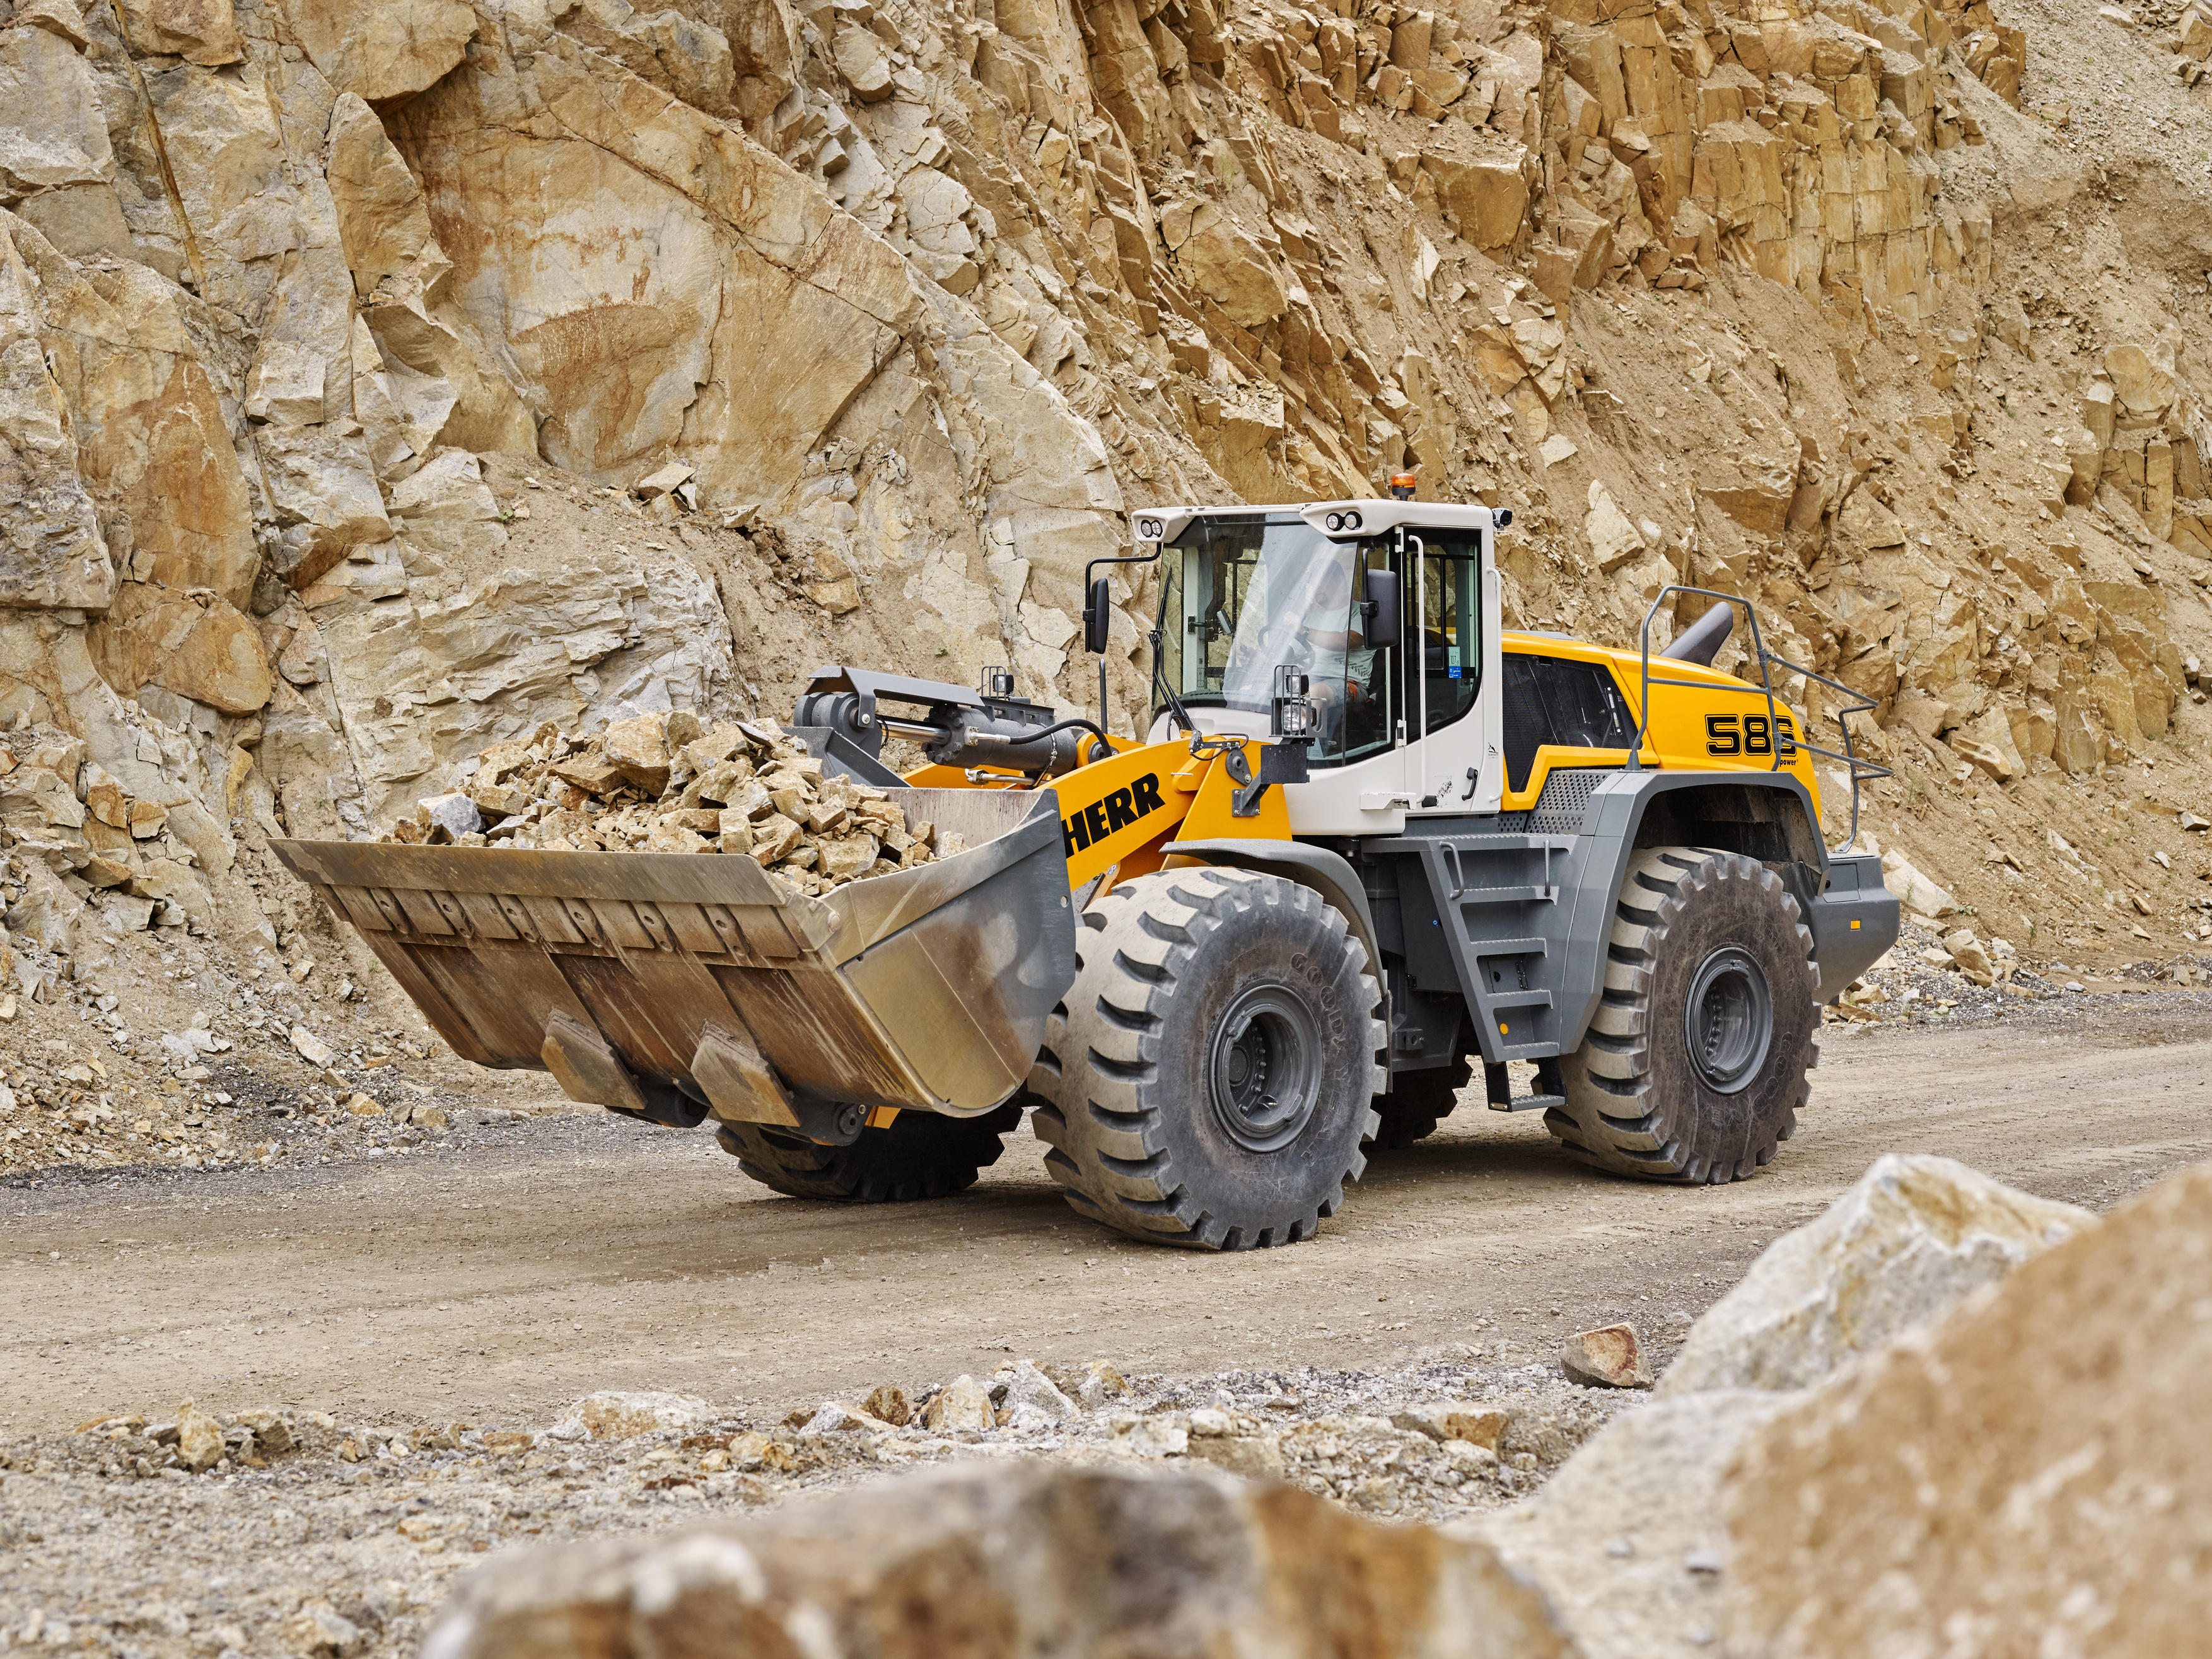 The L 586 XPower® the new Stage IV / Tier 4f compliant generation of large wheel loaders from Liebherr. The standard version, with an operating weight of 71,870 lb, has a tipping load of 47,620.